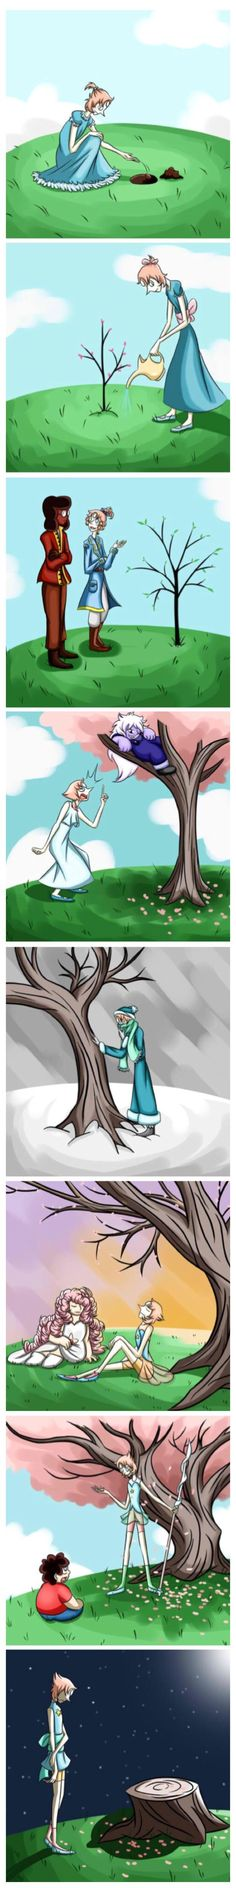 Pearl's tree   I DID NOT NEED TO EXPERIENCE FEELINGS OVER A FREAKING TREE THANKS: